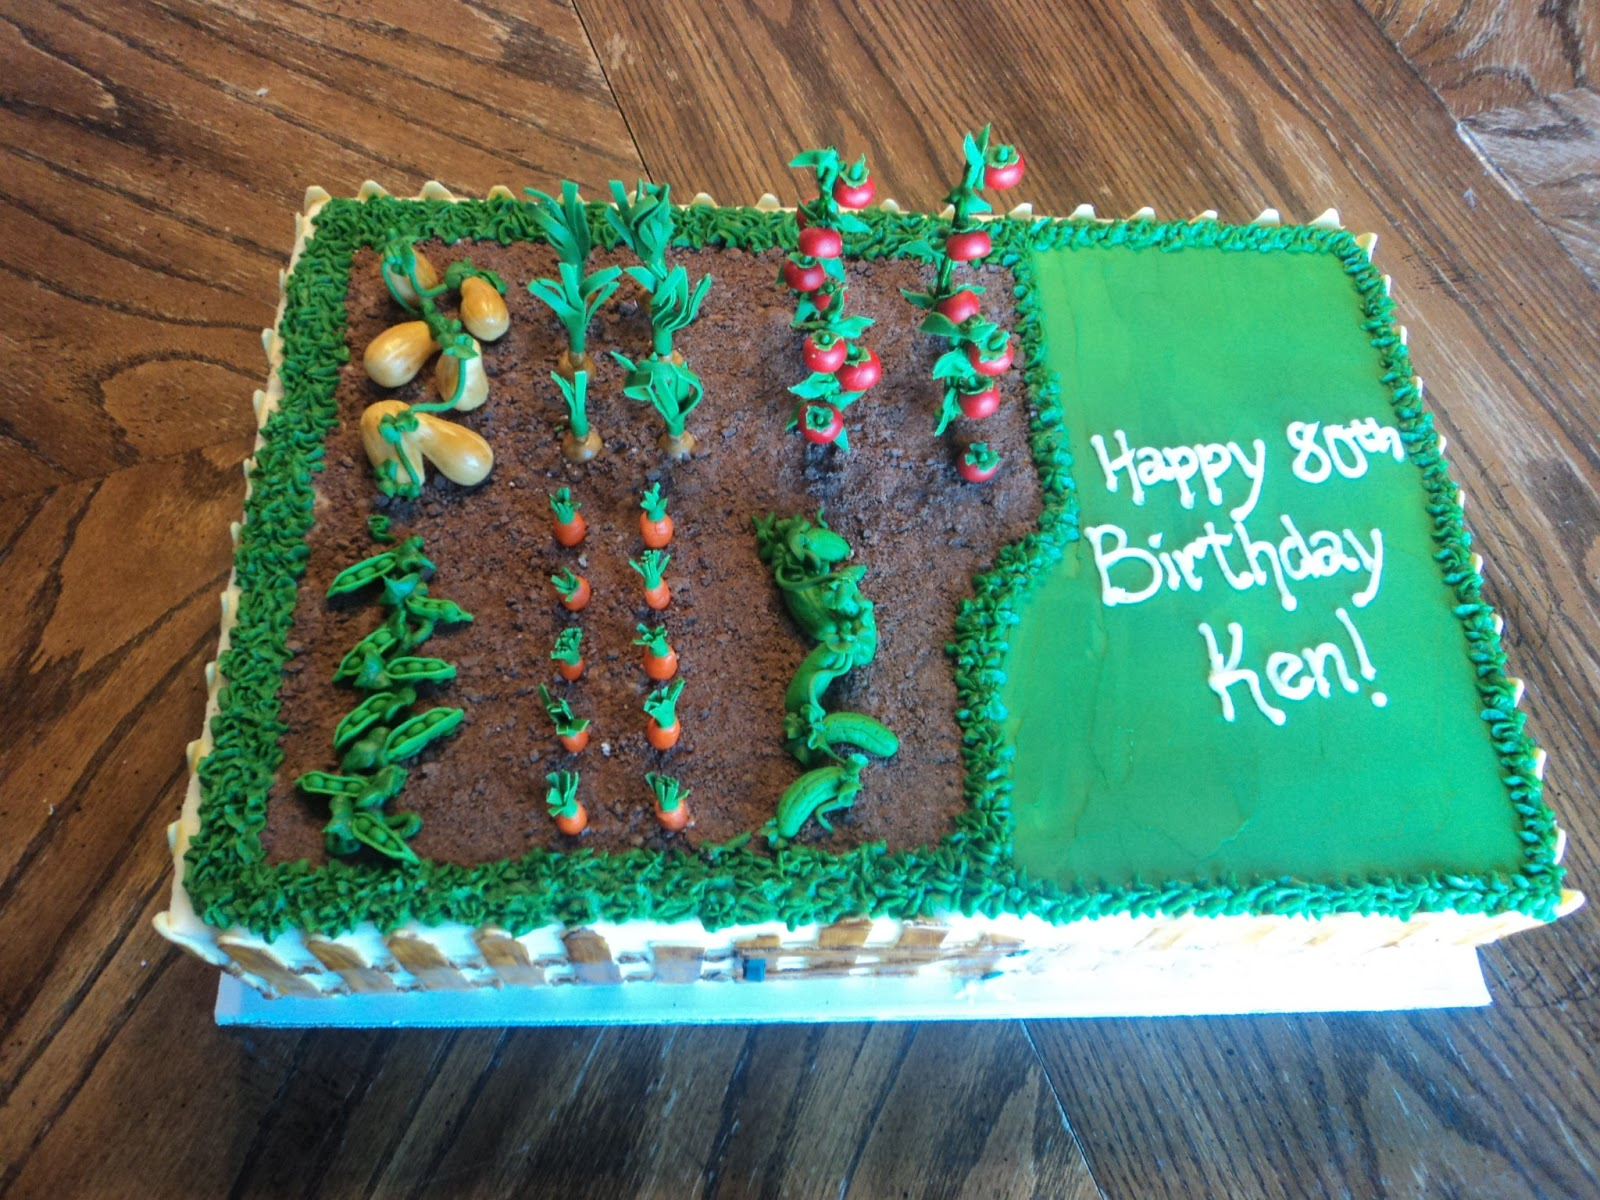 Delectable Cakes Vegetable Garden Birthday Cake